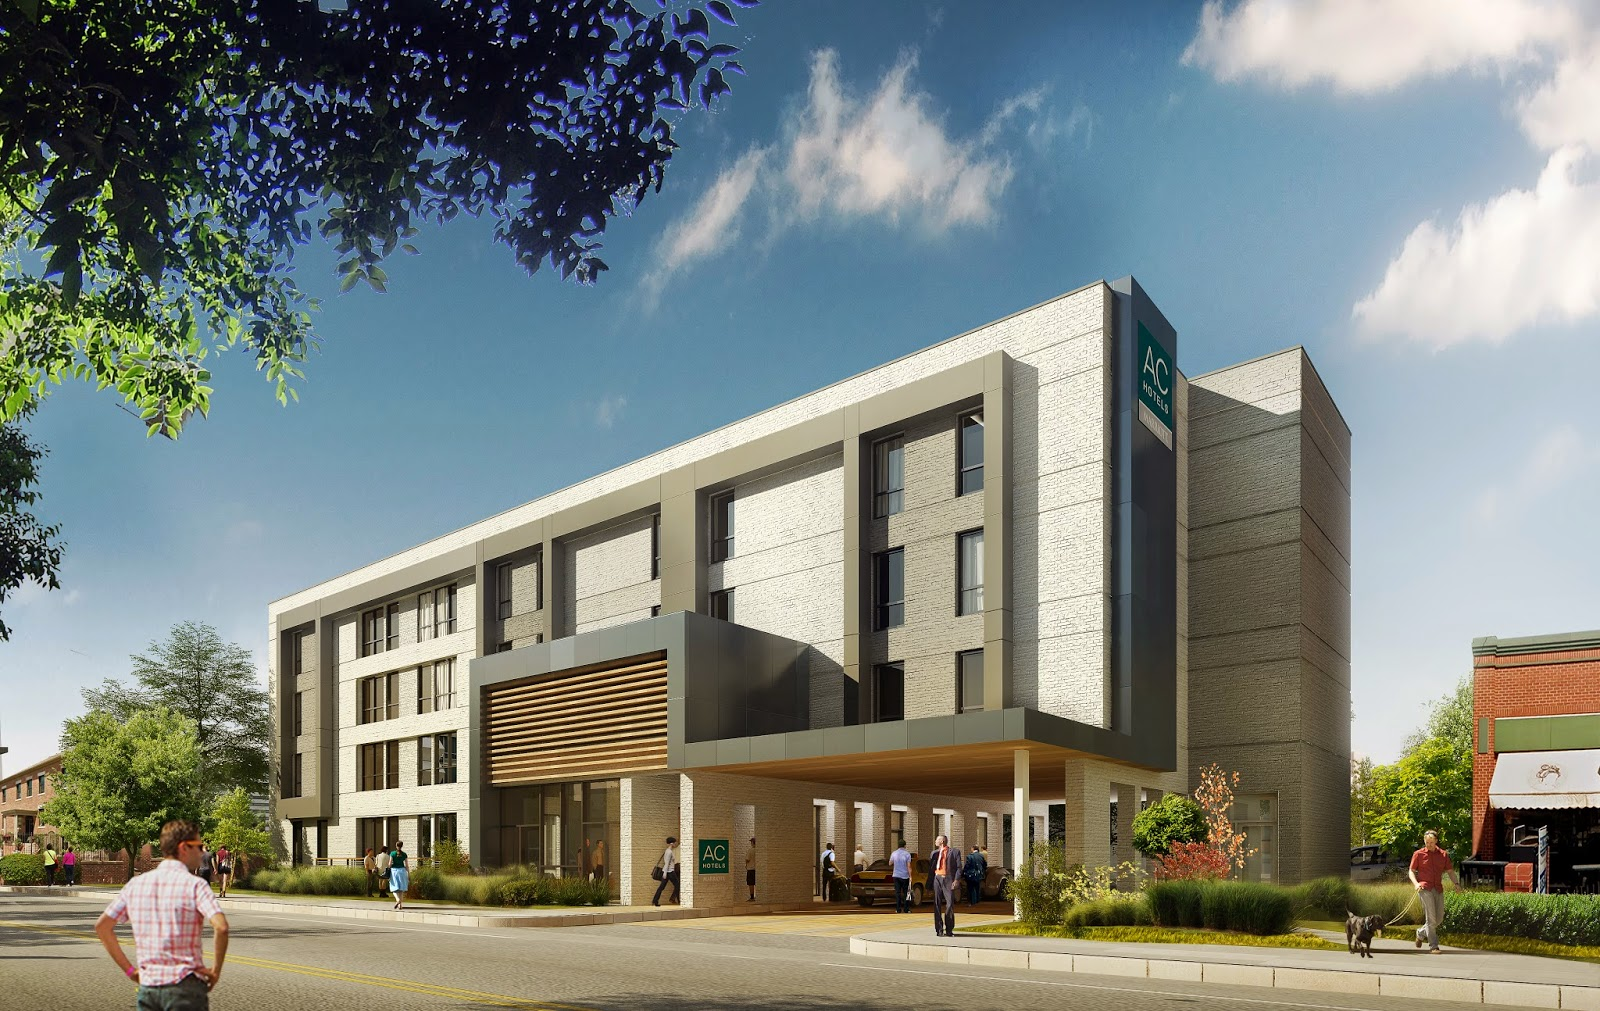 Kansas city westport welcomes marriott 39 s newest lifestyle for City hotel design